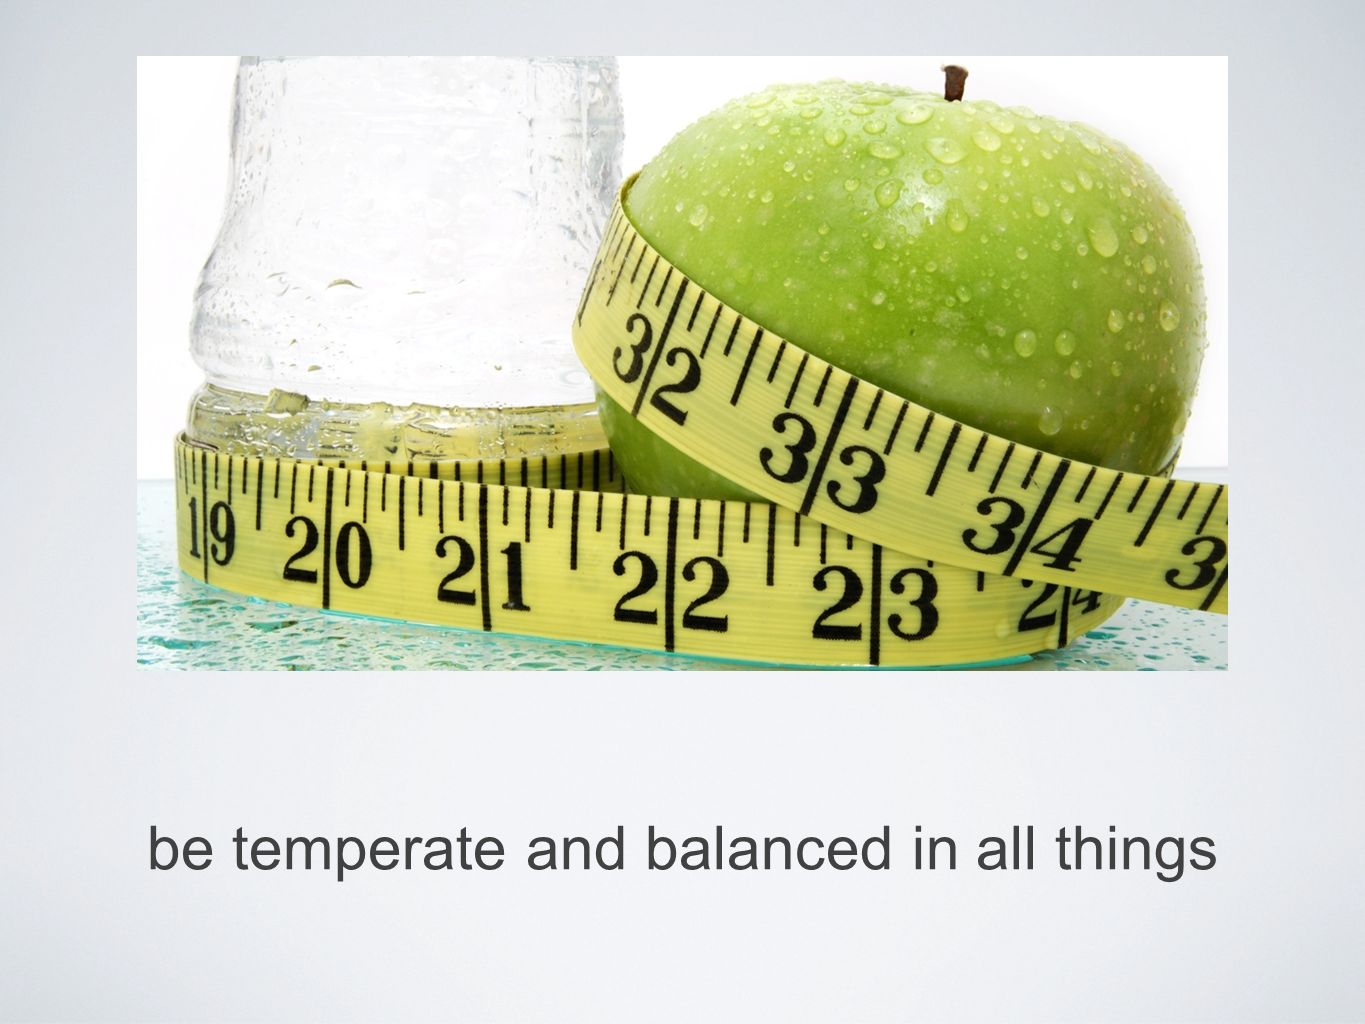 be temperate and balanced in all things